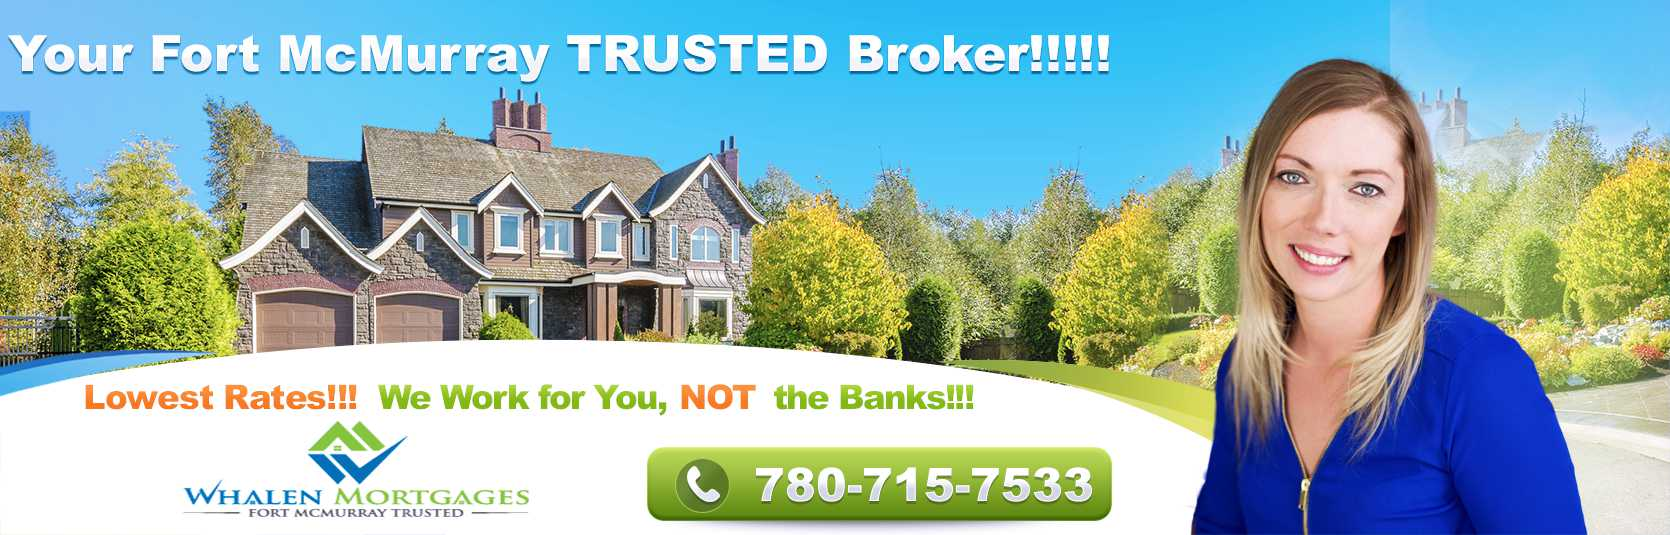 Fort McMurray Mortgage : Fort McMurray Mortgage Brokers